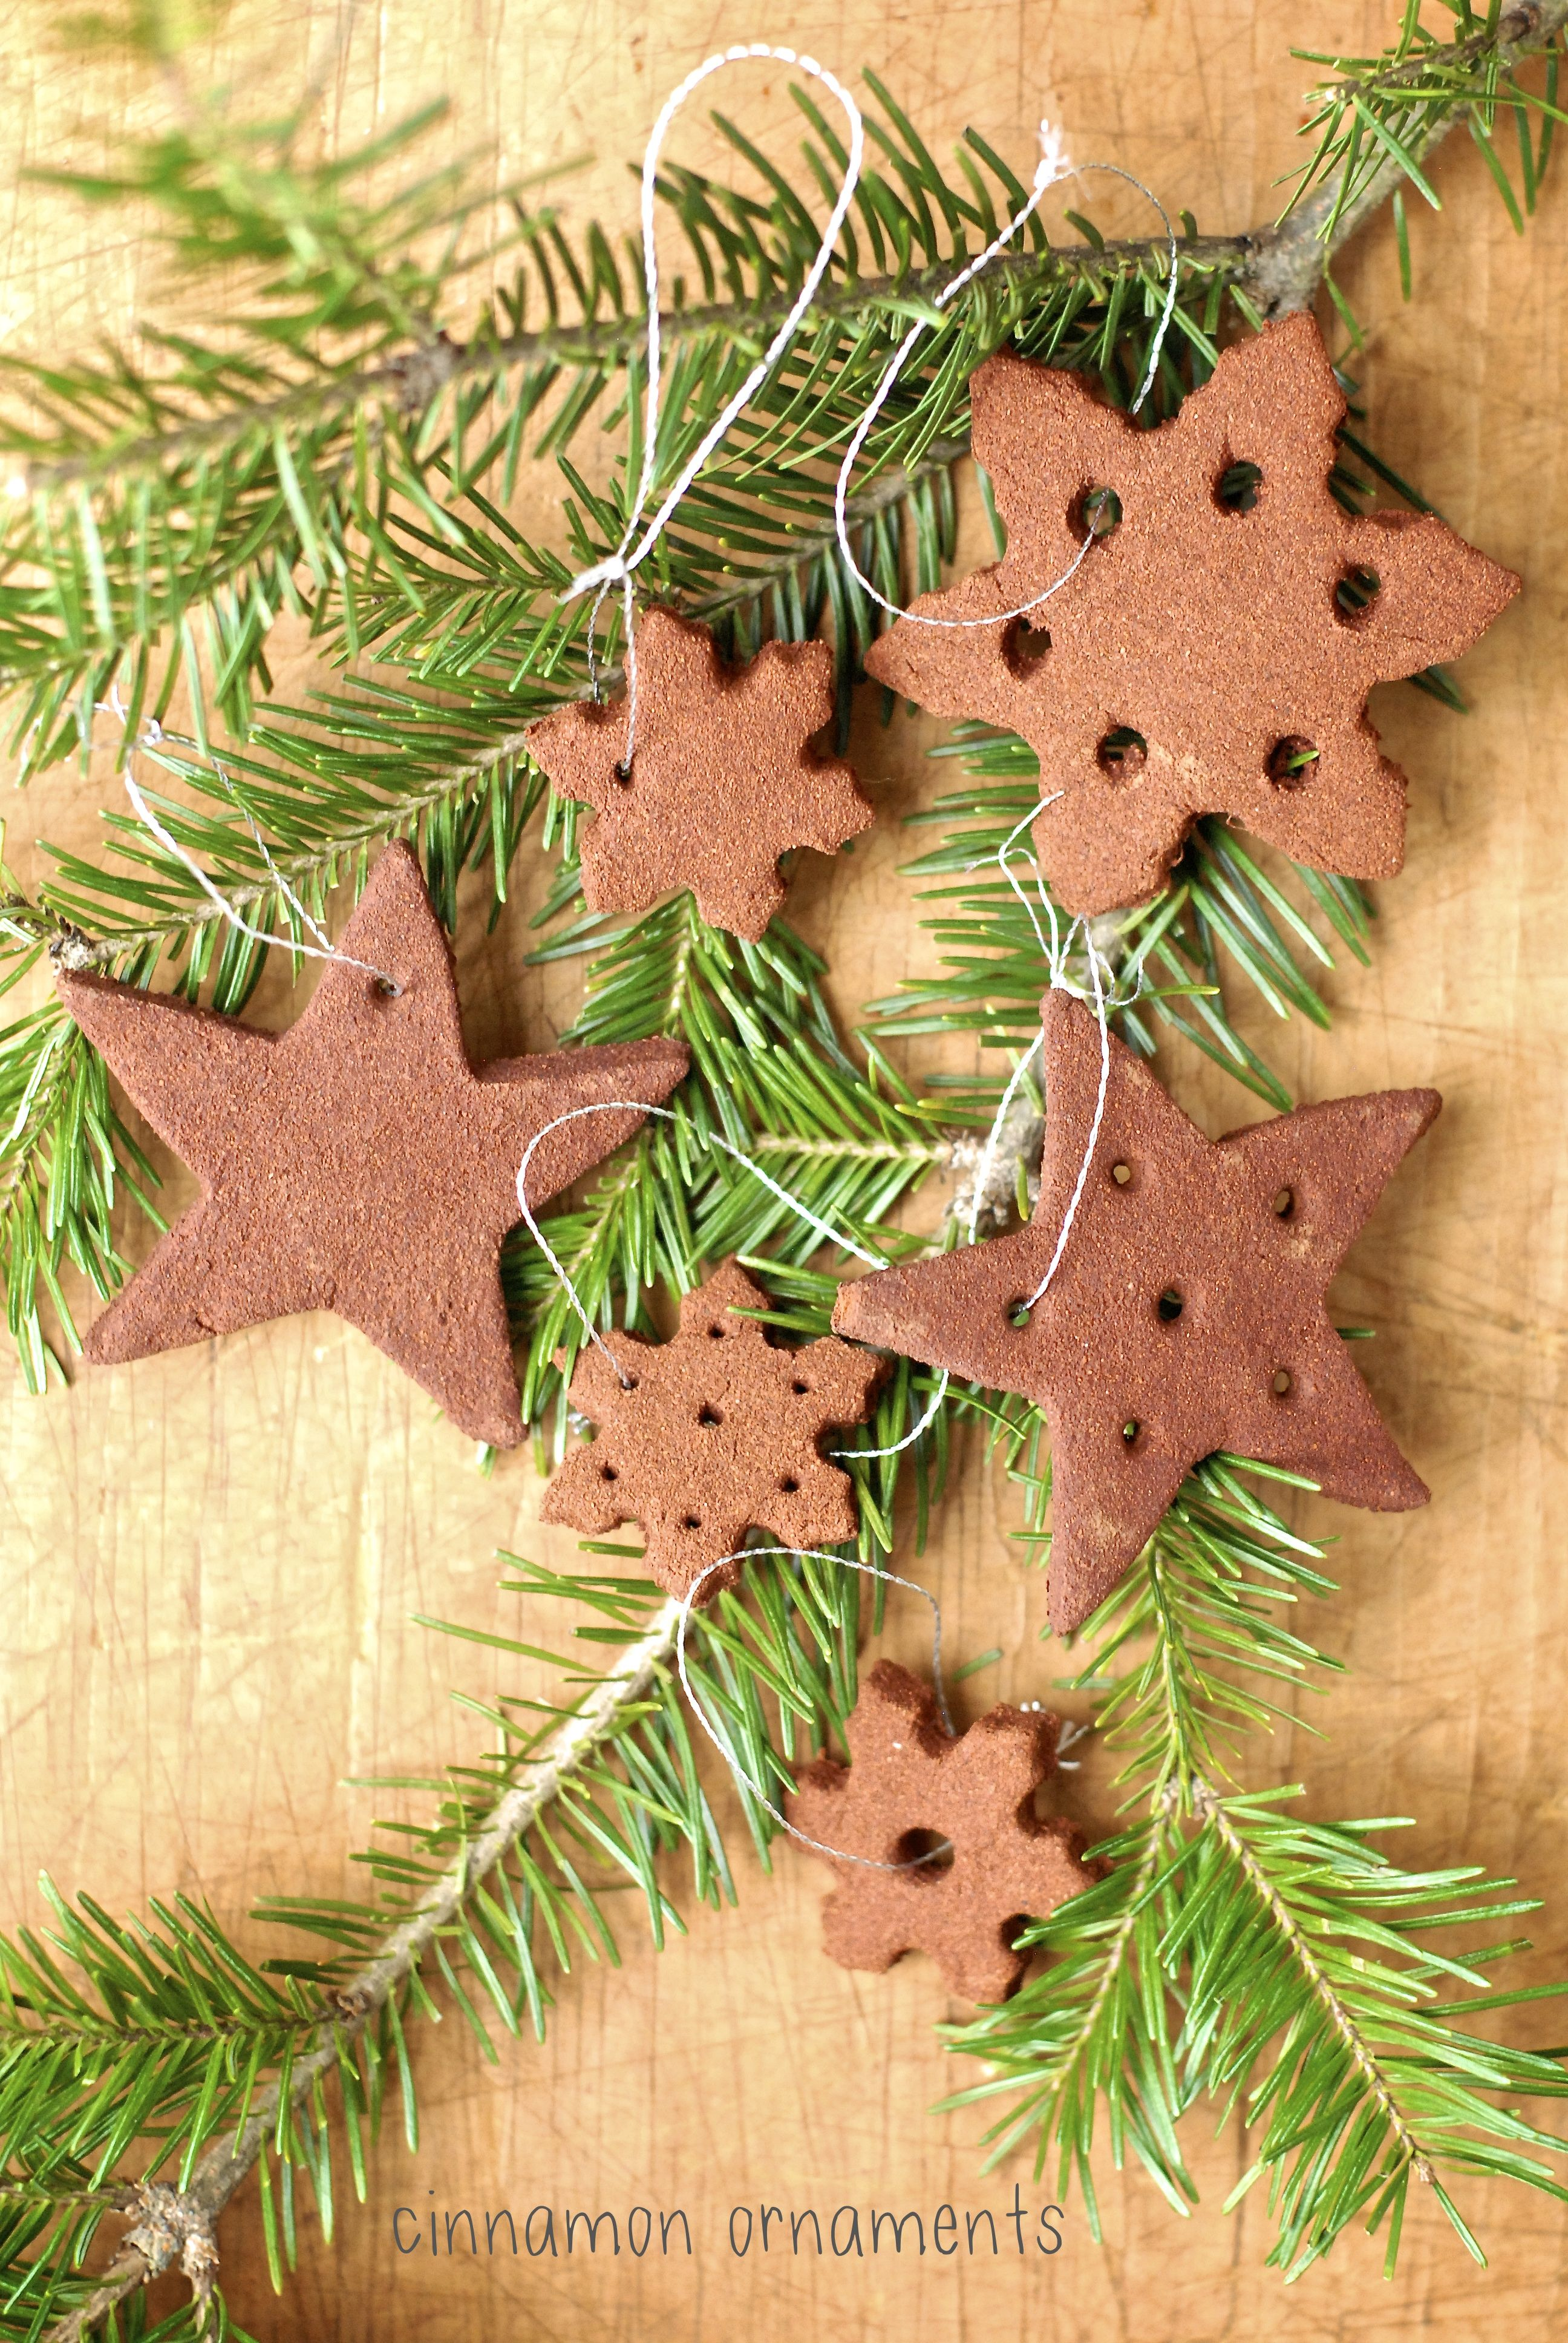 20 Best Cinnamon Christmas Ornaments   How to Make Easy ...